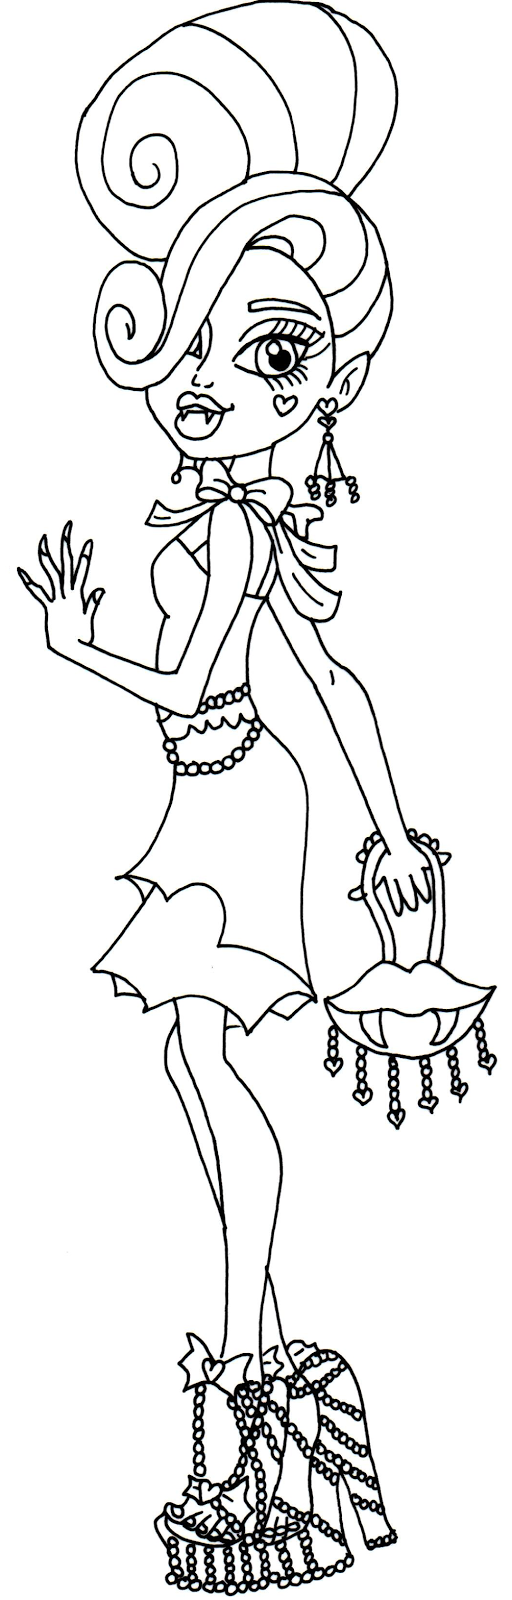 Free coloring pages hamsters